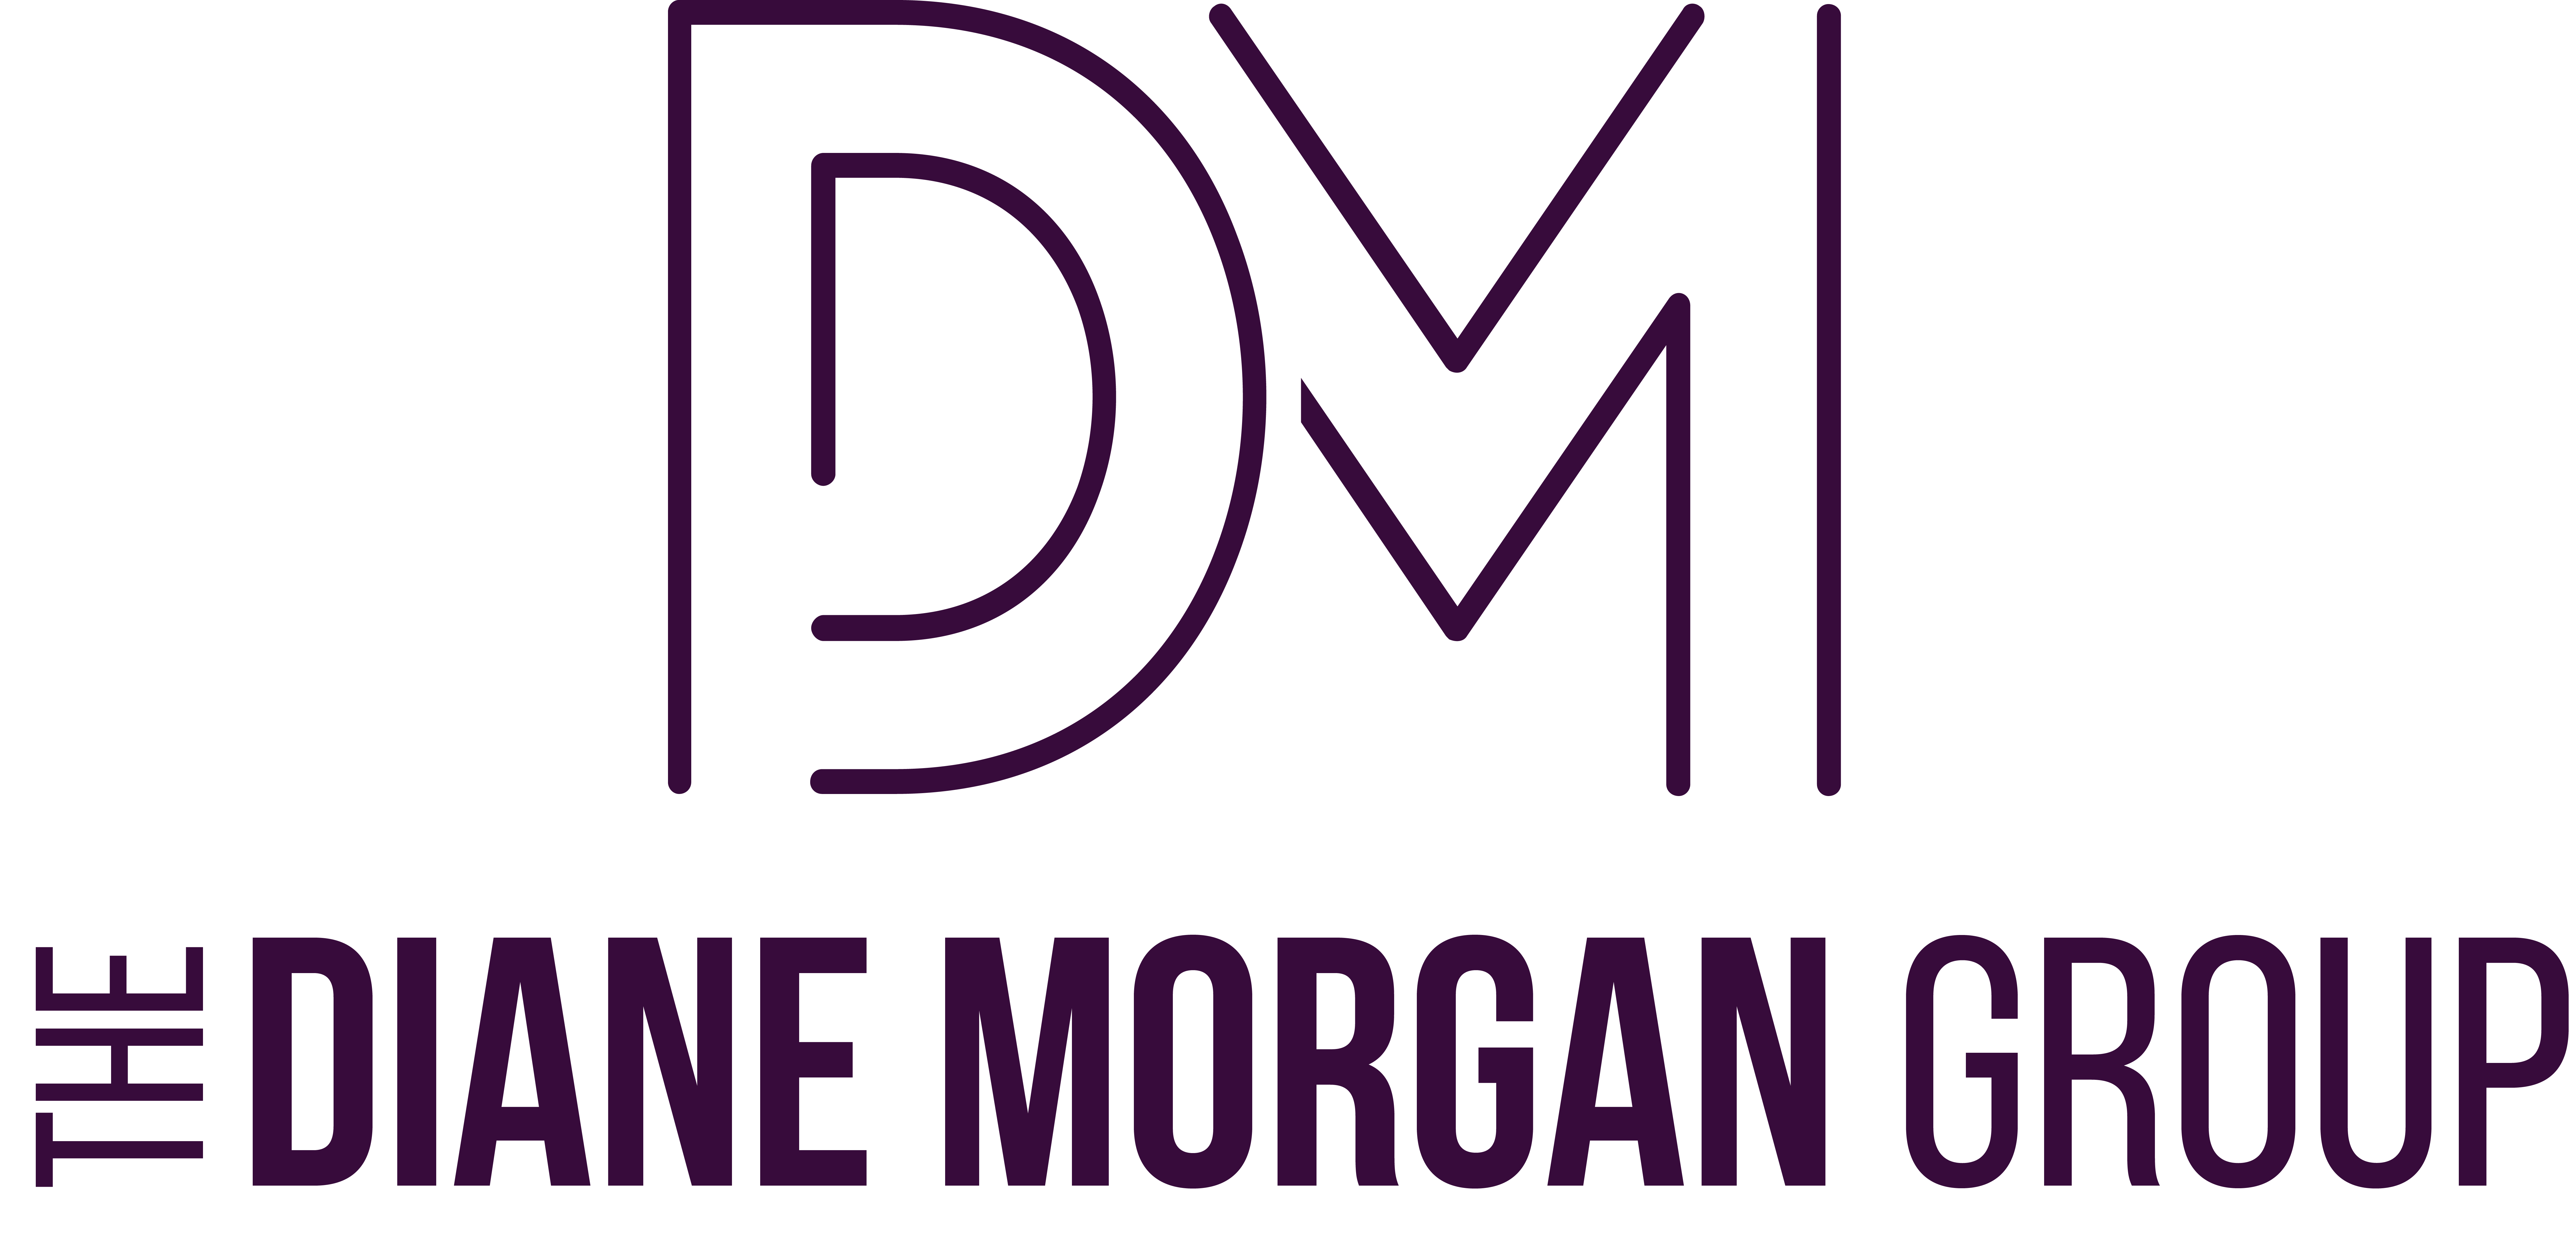 The Diane Morgan Group